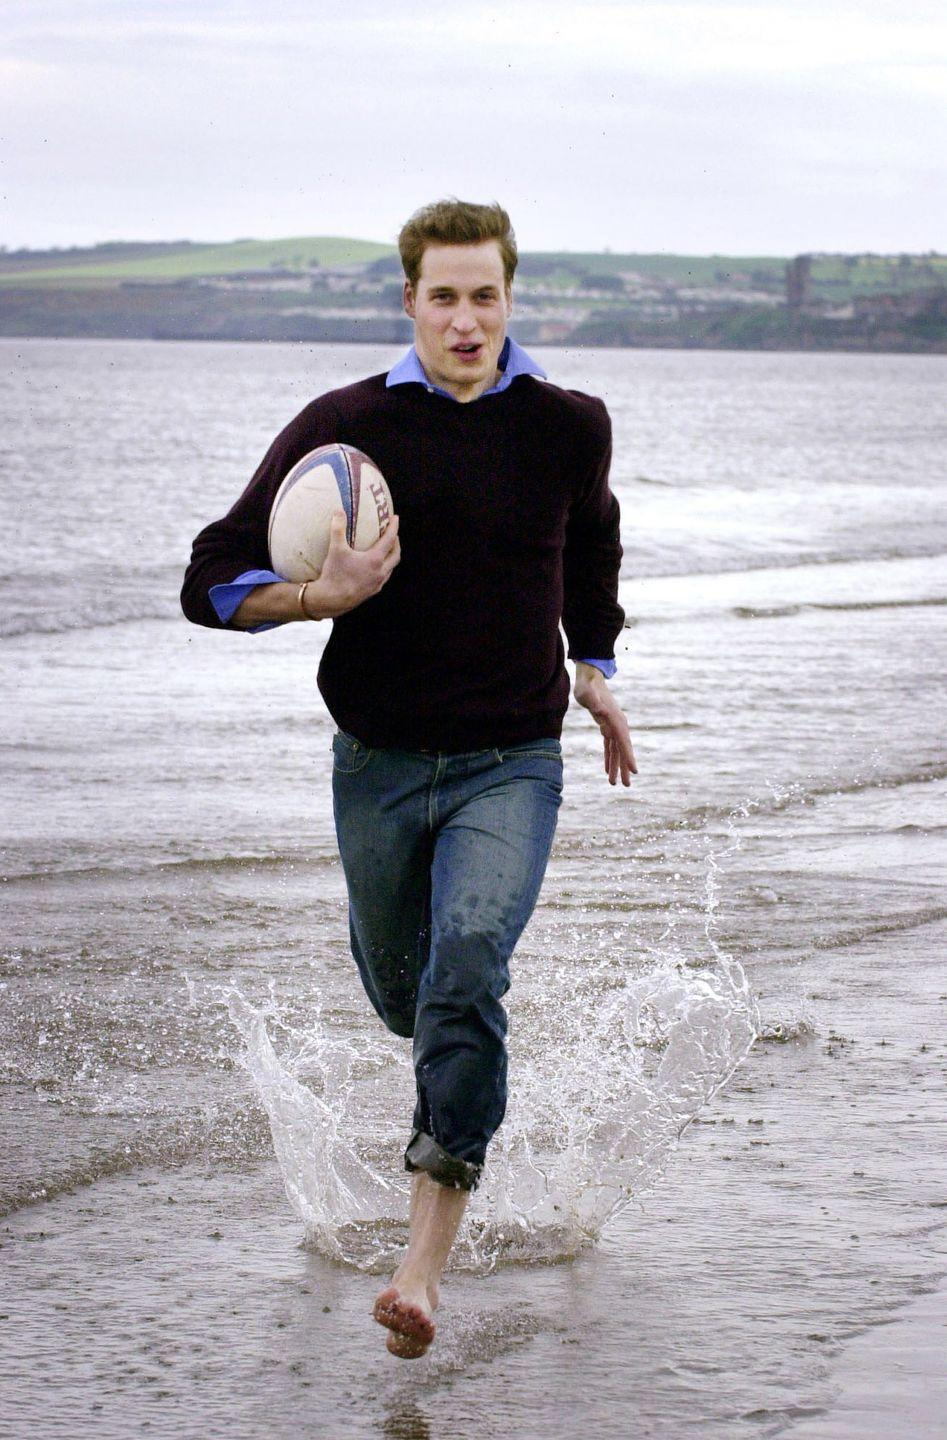 <p>In a break from his studies at St Andrews, Prince William let loose while playing rugby on the beach near his university home. <br></p>